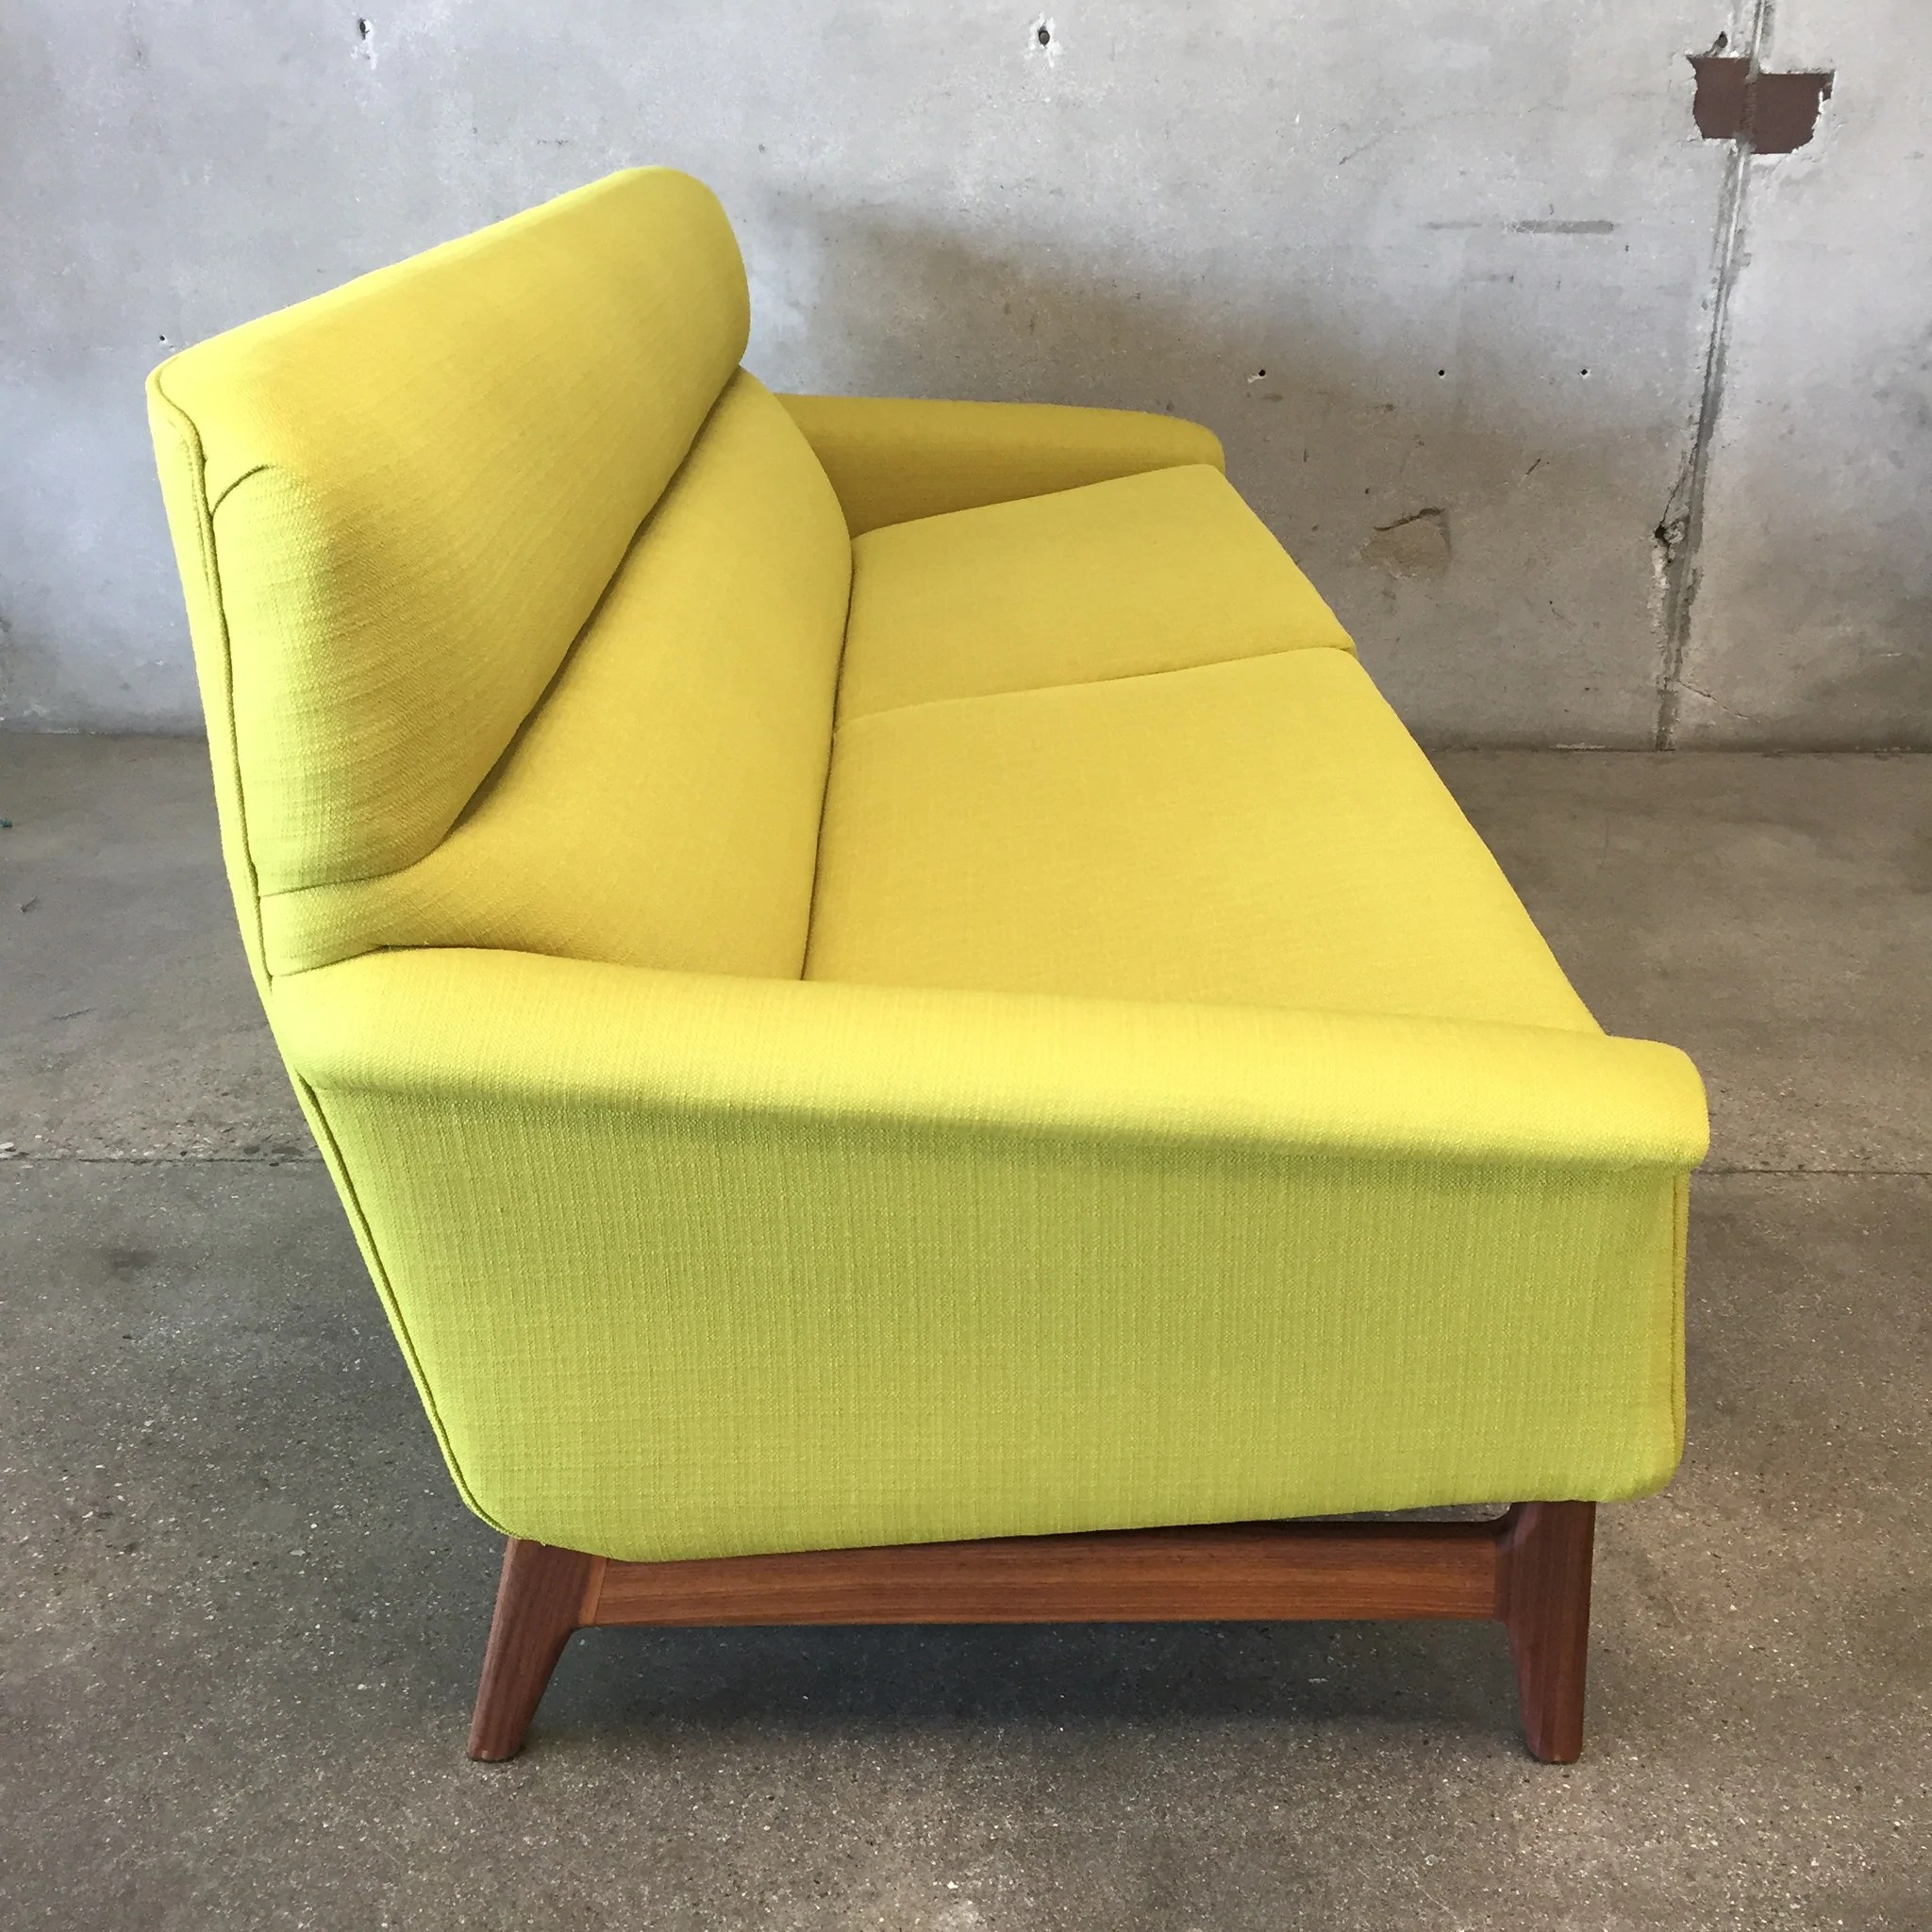 dux sofa by folke ohlsson leather cleaner for white vintage mid century designed